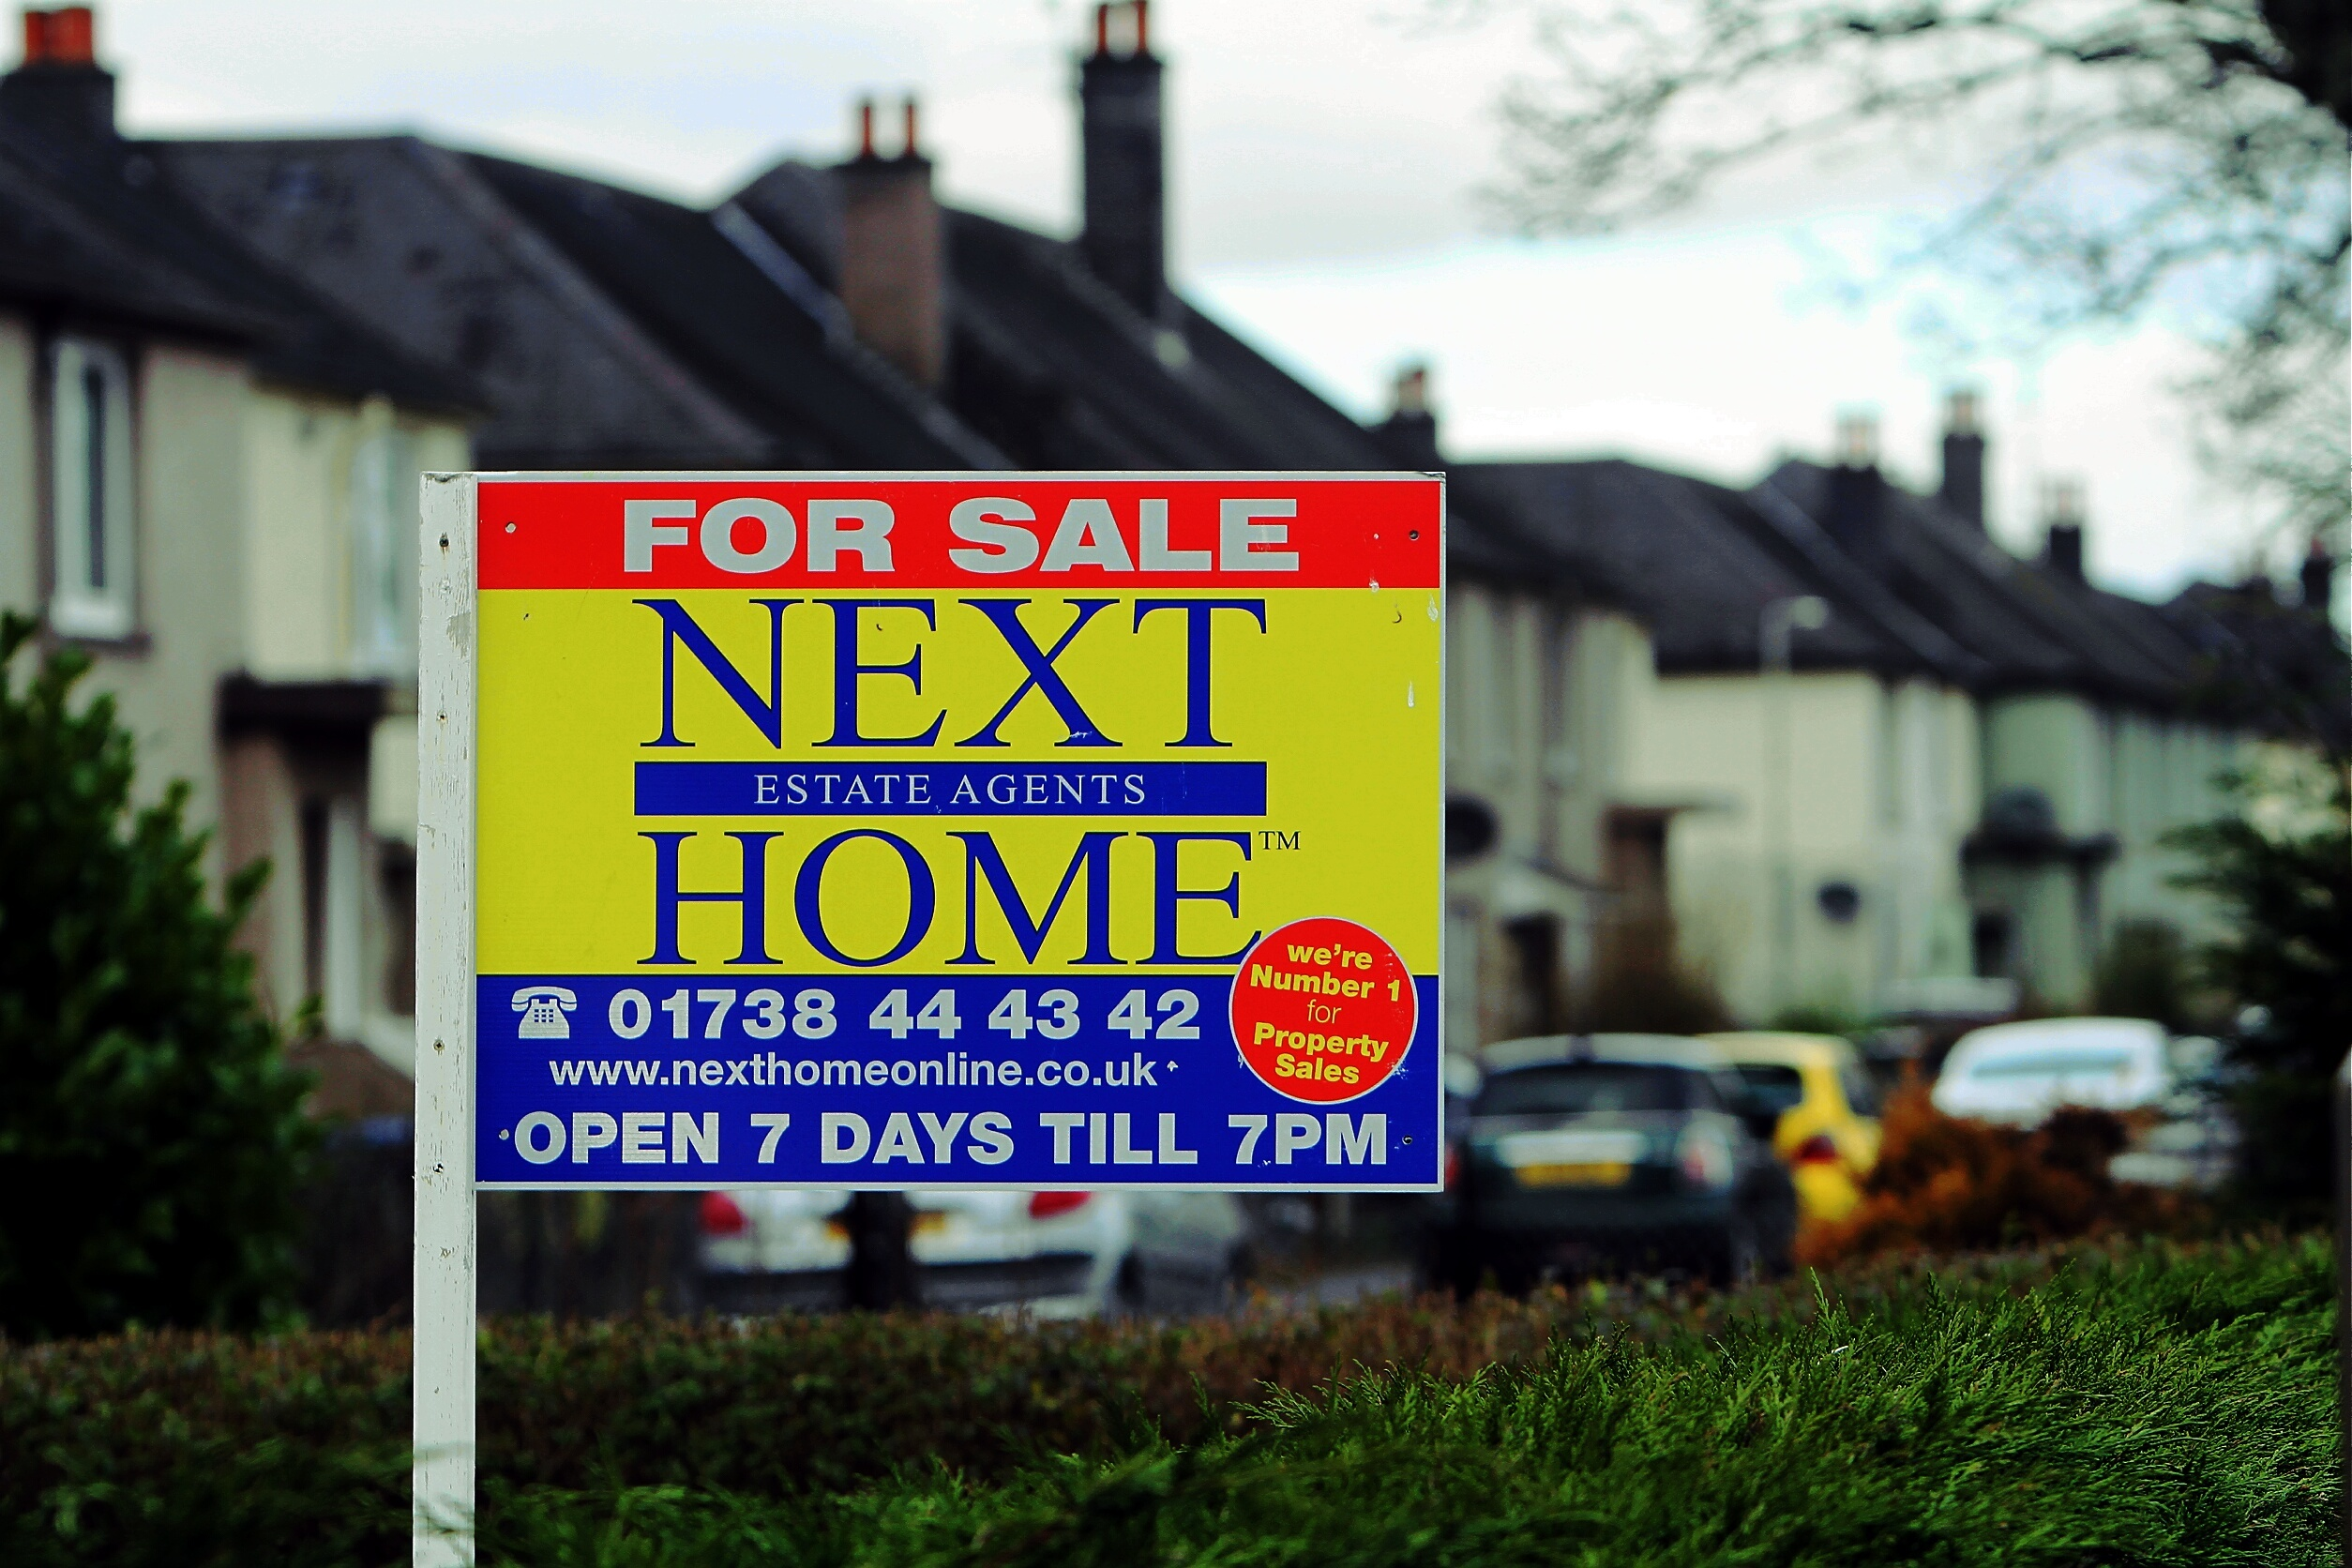 Homes for sale in rural Perthshire